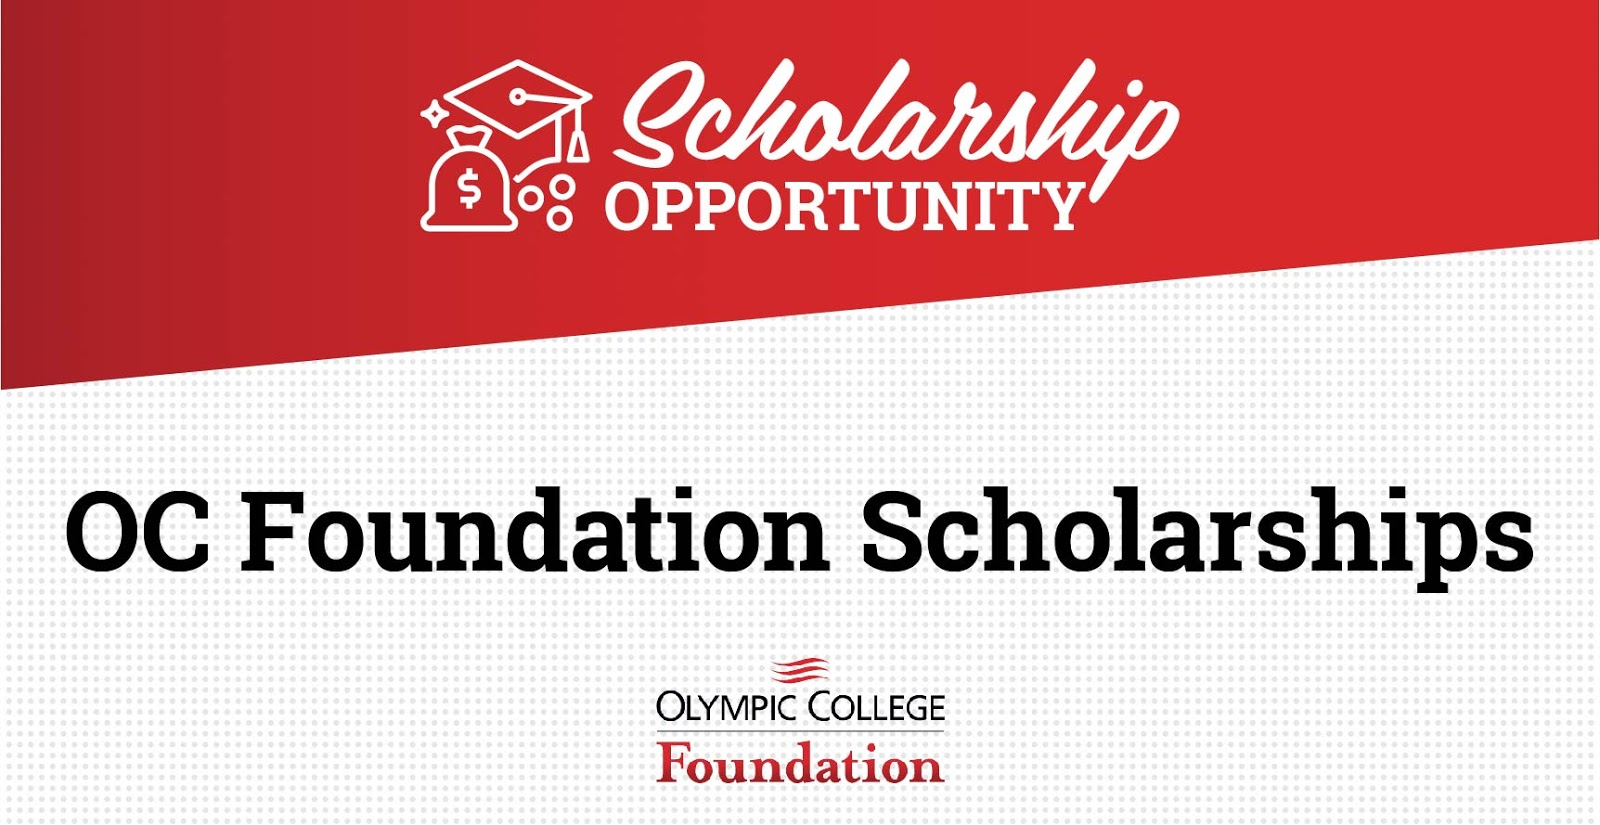 Flyer for Olympic college scholarships